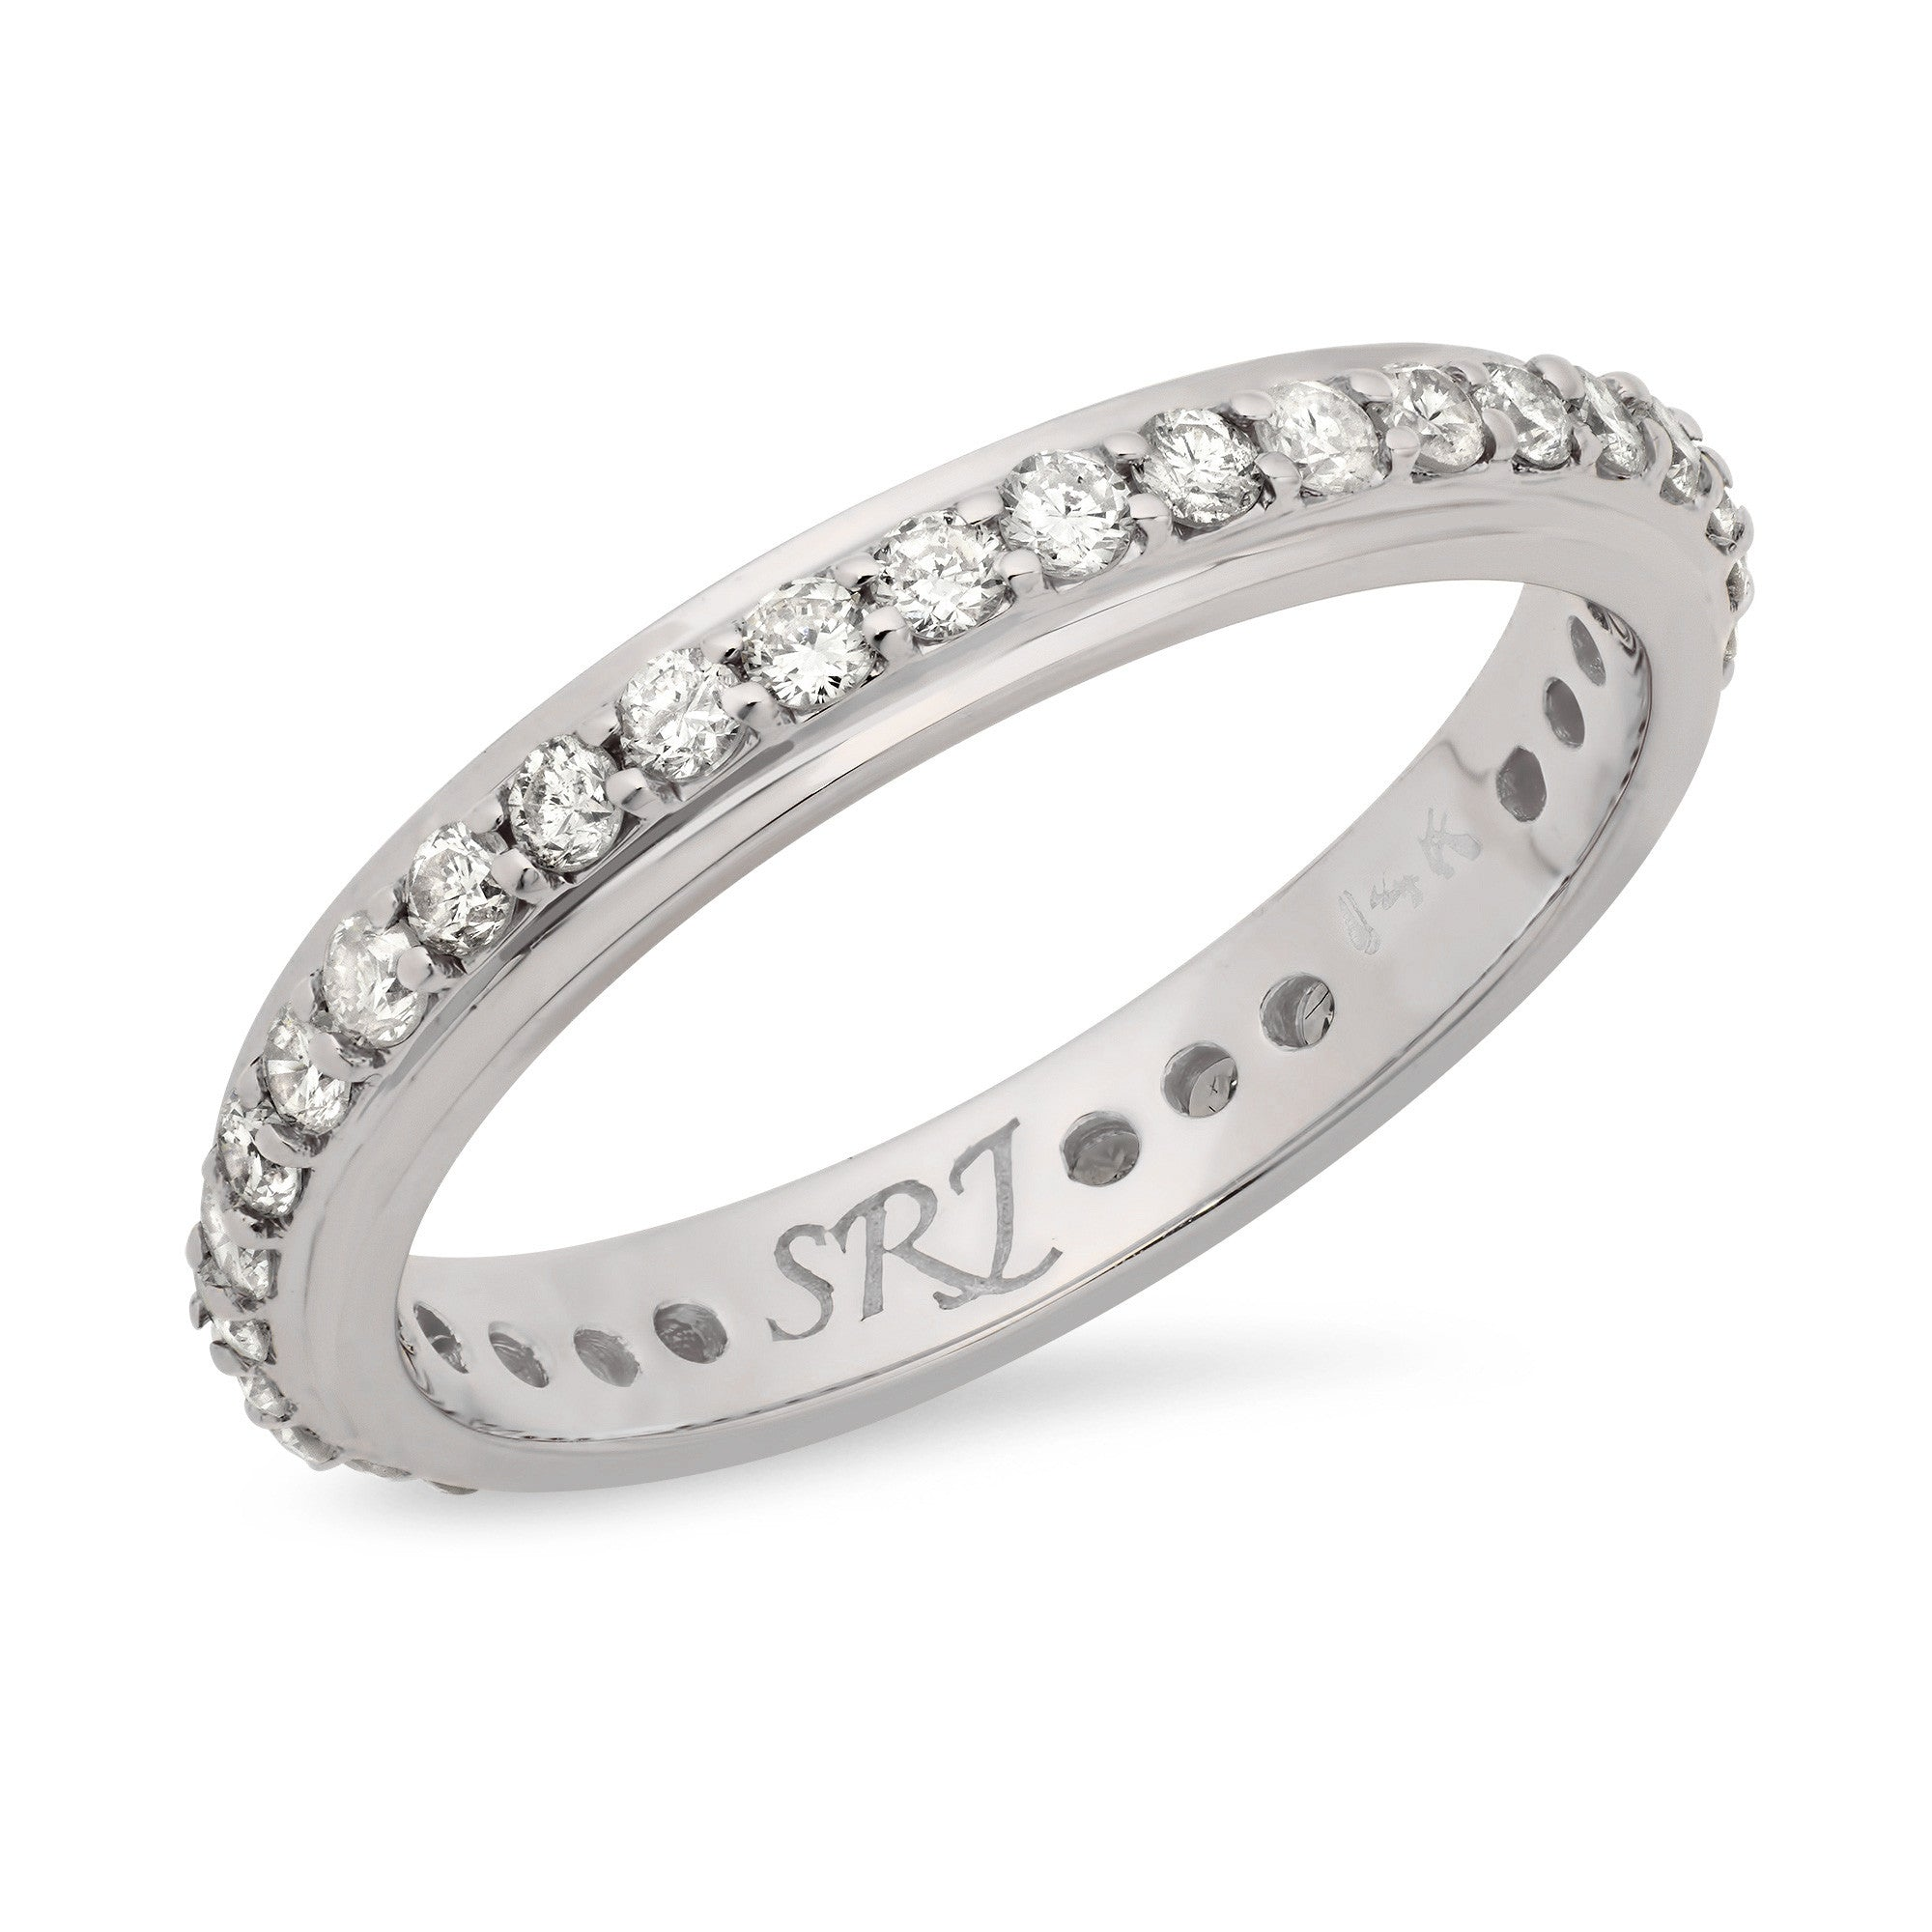 house and a alexis jaffe bands eternity metropolitan ring round princess product anniversary diamond band